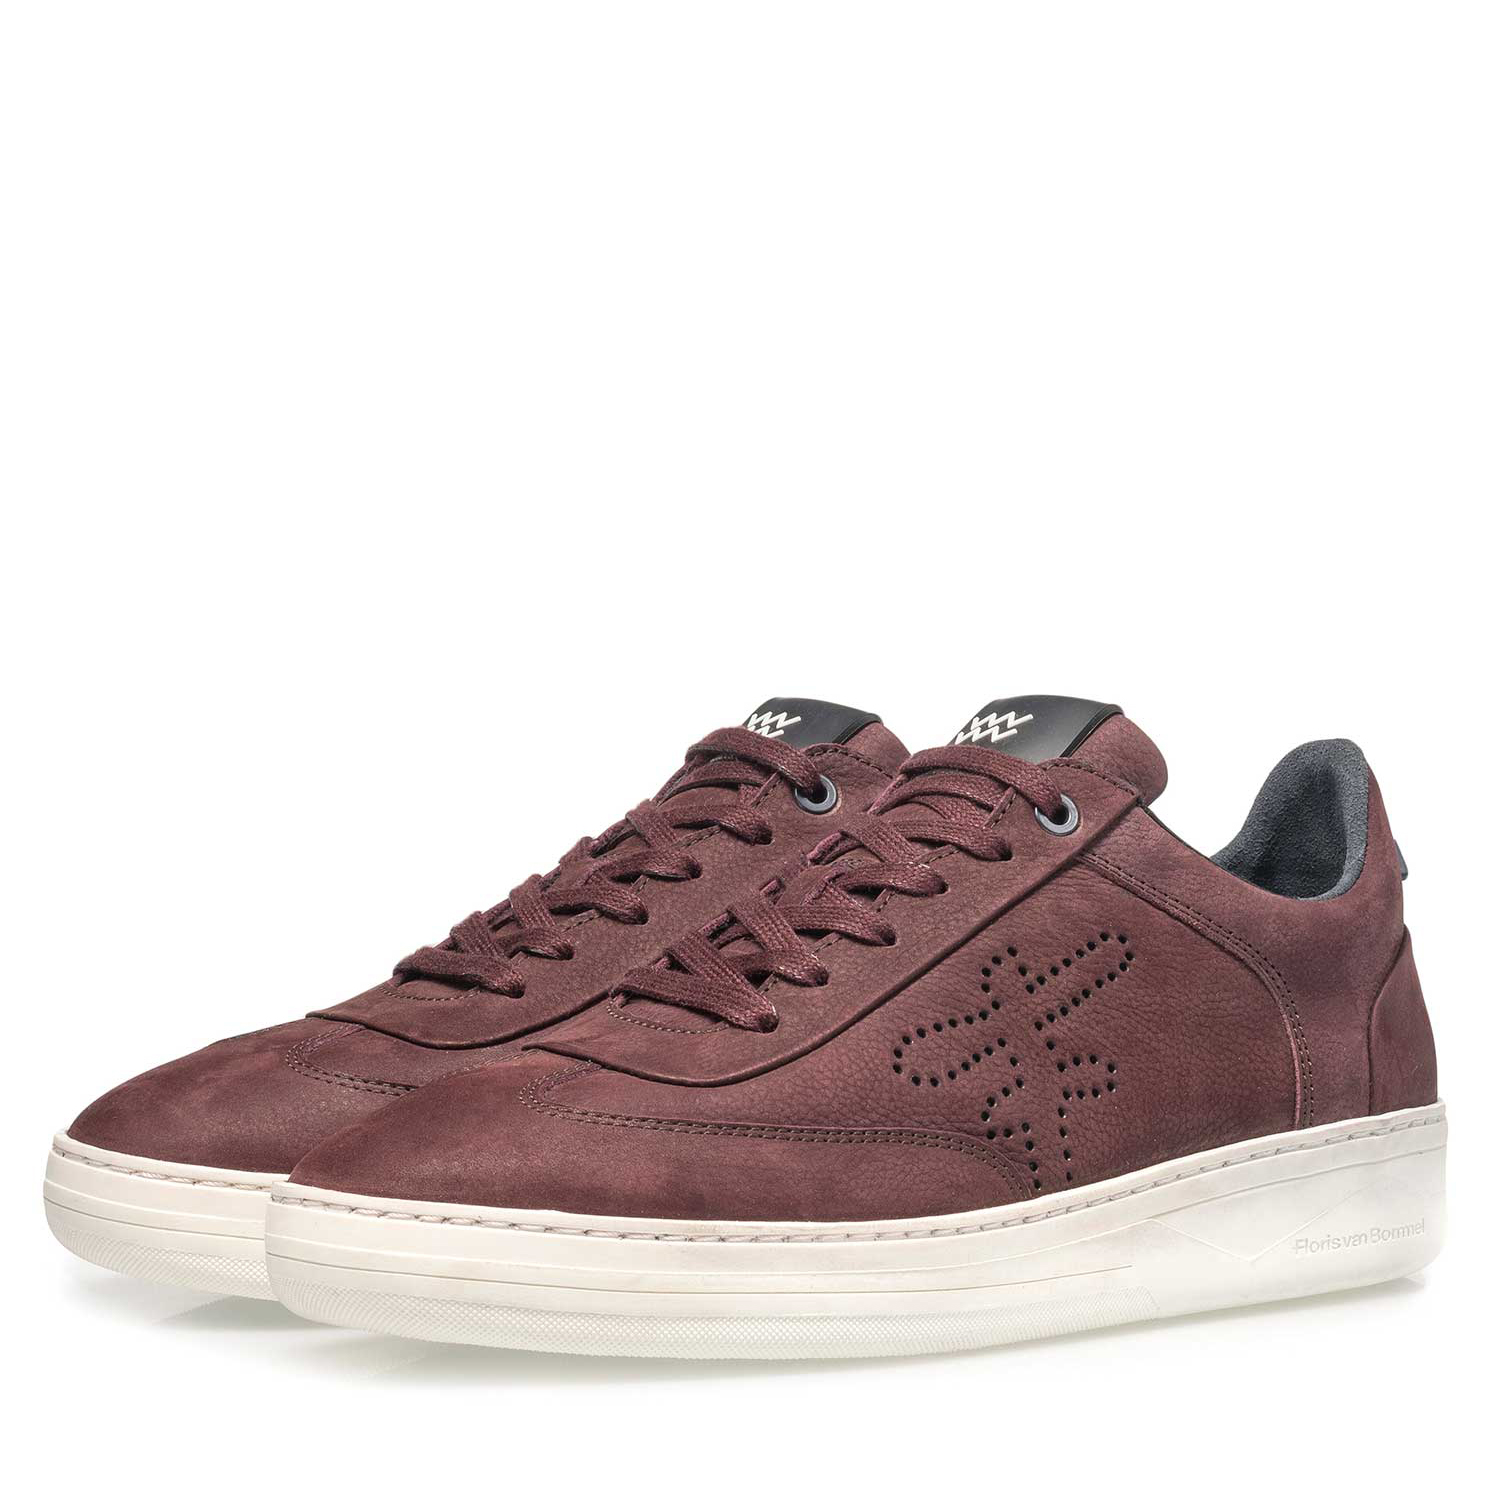 16255/10 - Premium red printed nubuck leather sneaker